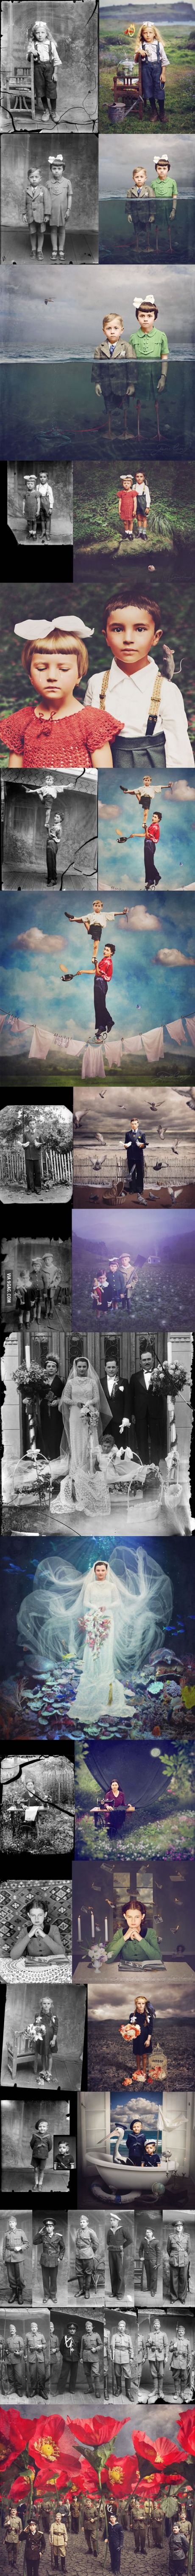 Artist colorizes old photos with surreal twists (by Jane Long)